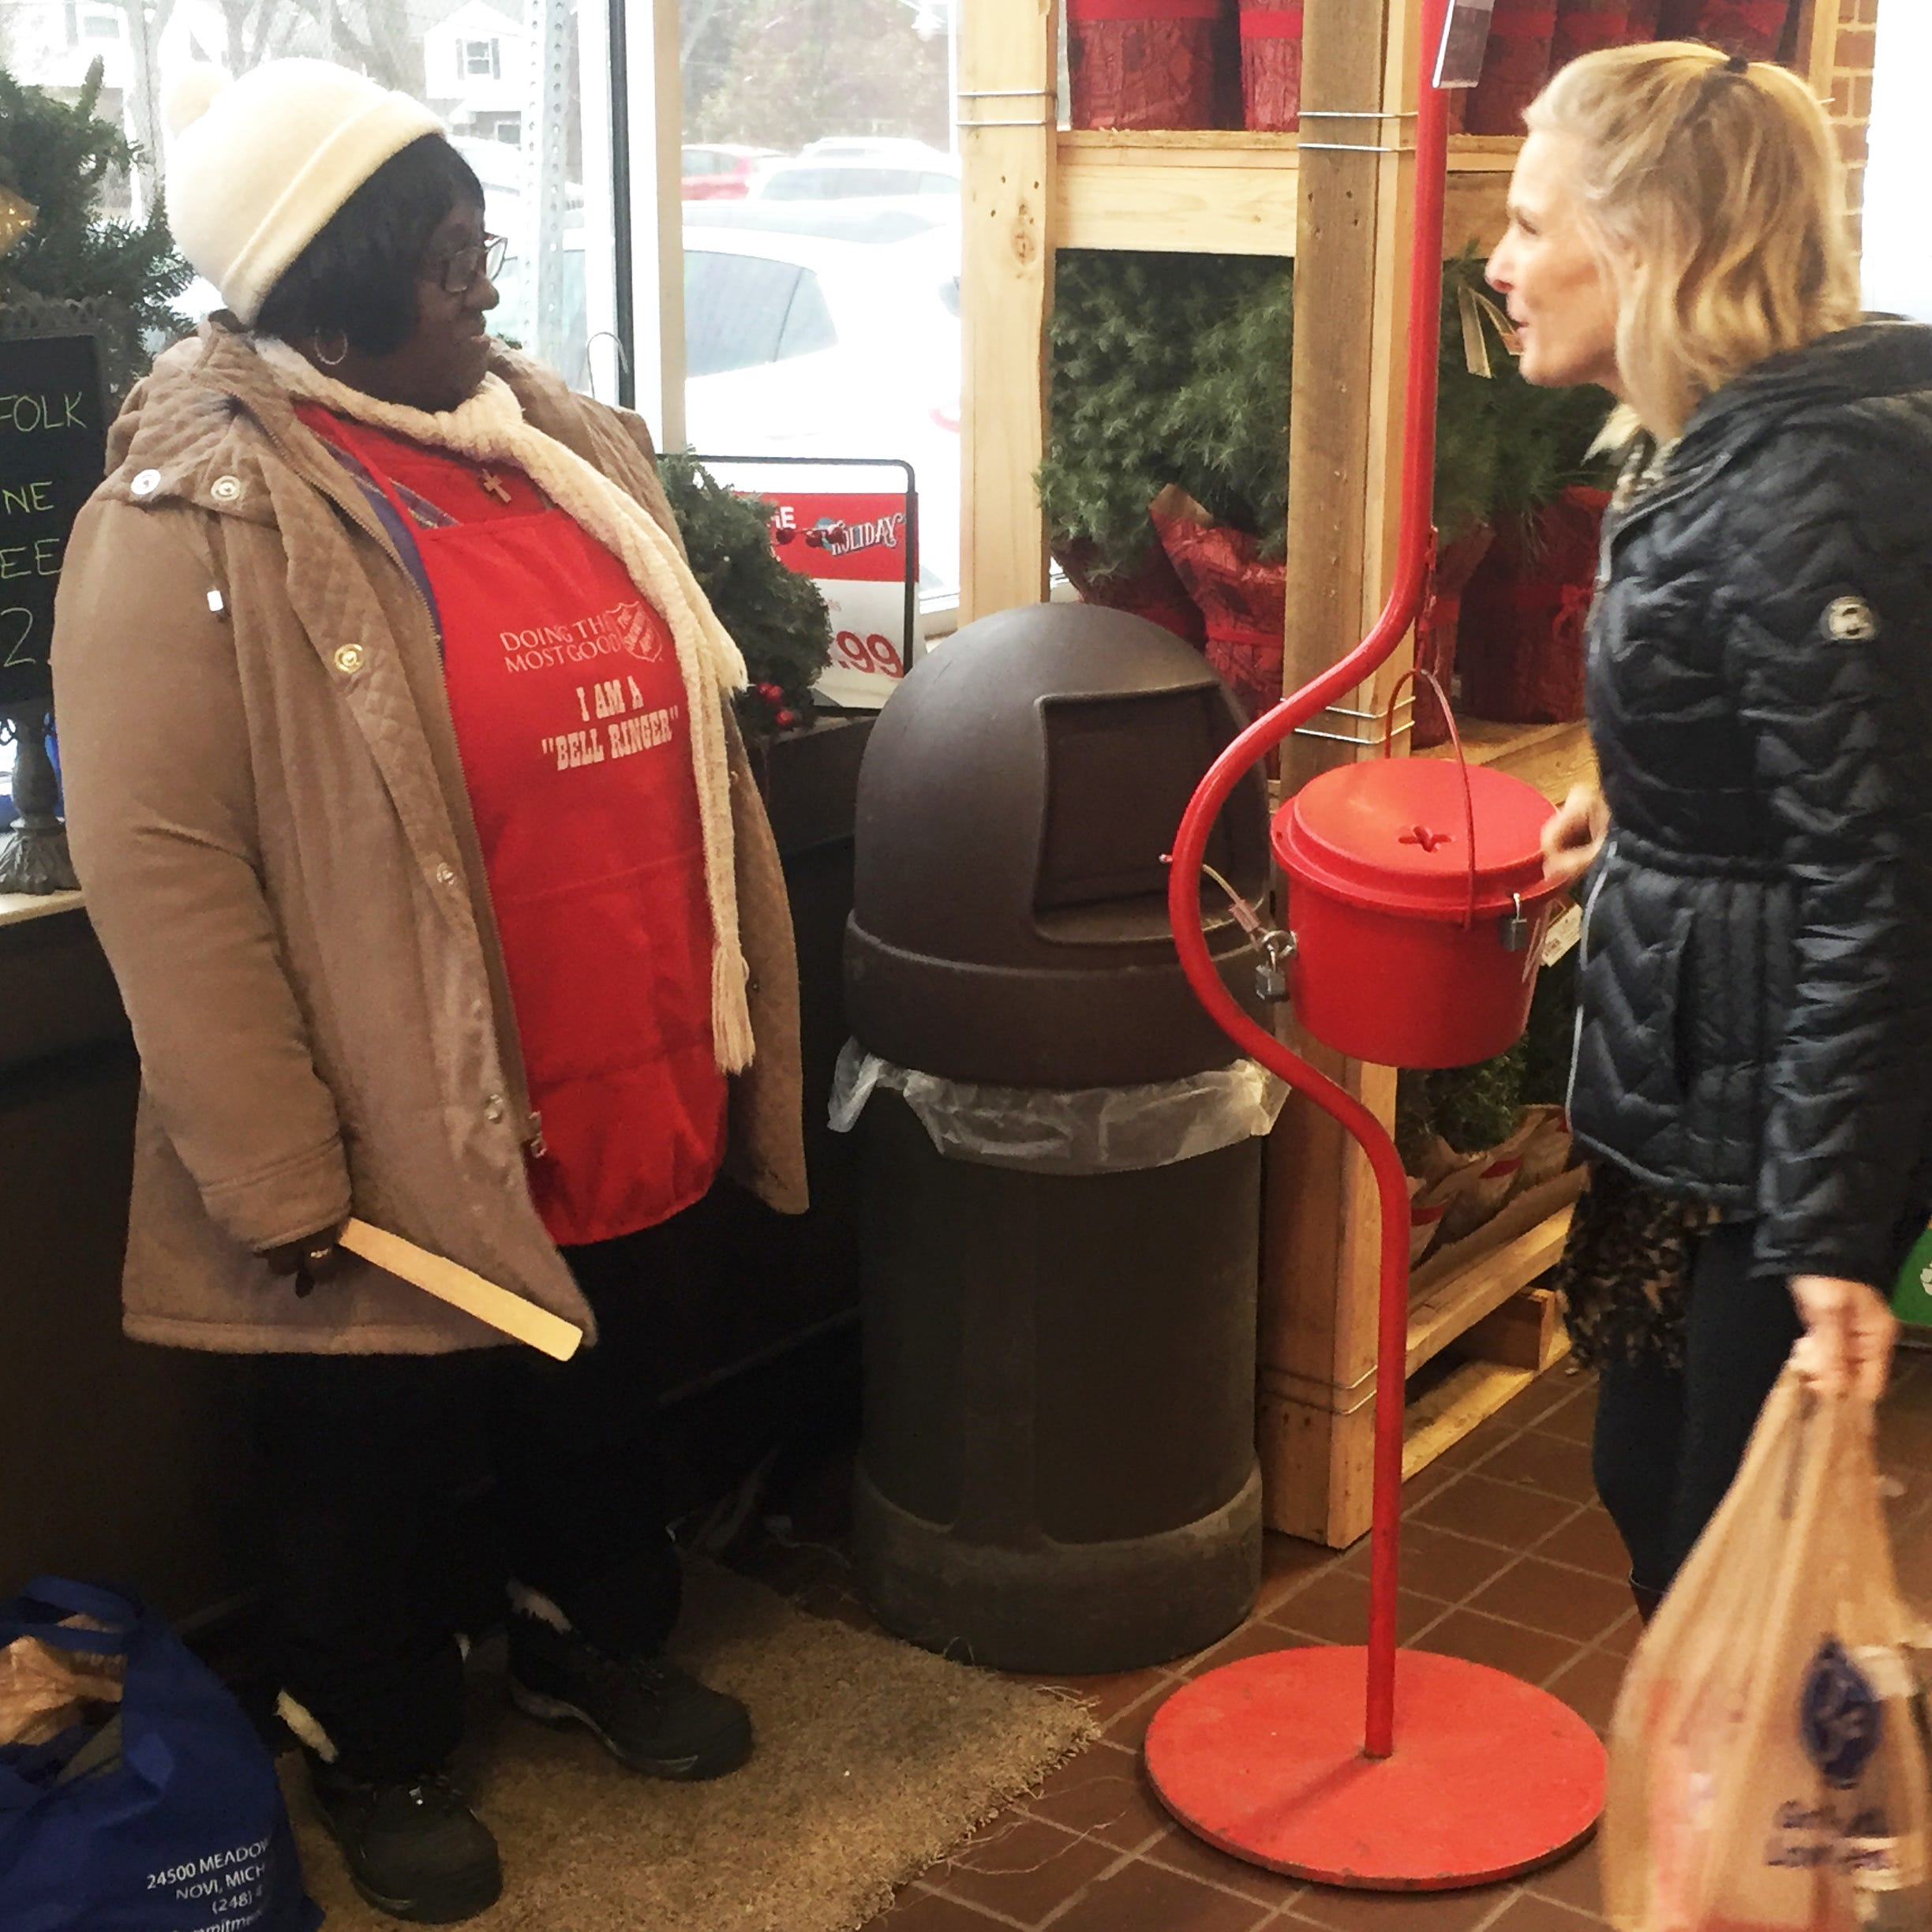 Gold coin donations in Salvation Army kettles spark speculation